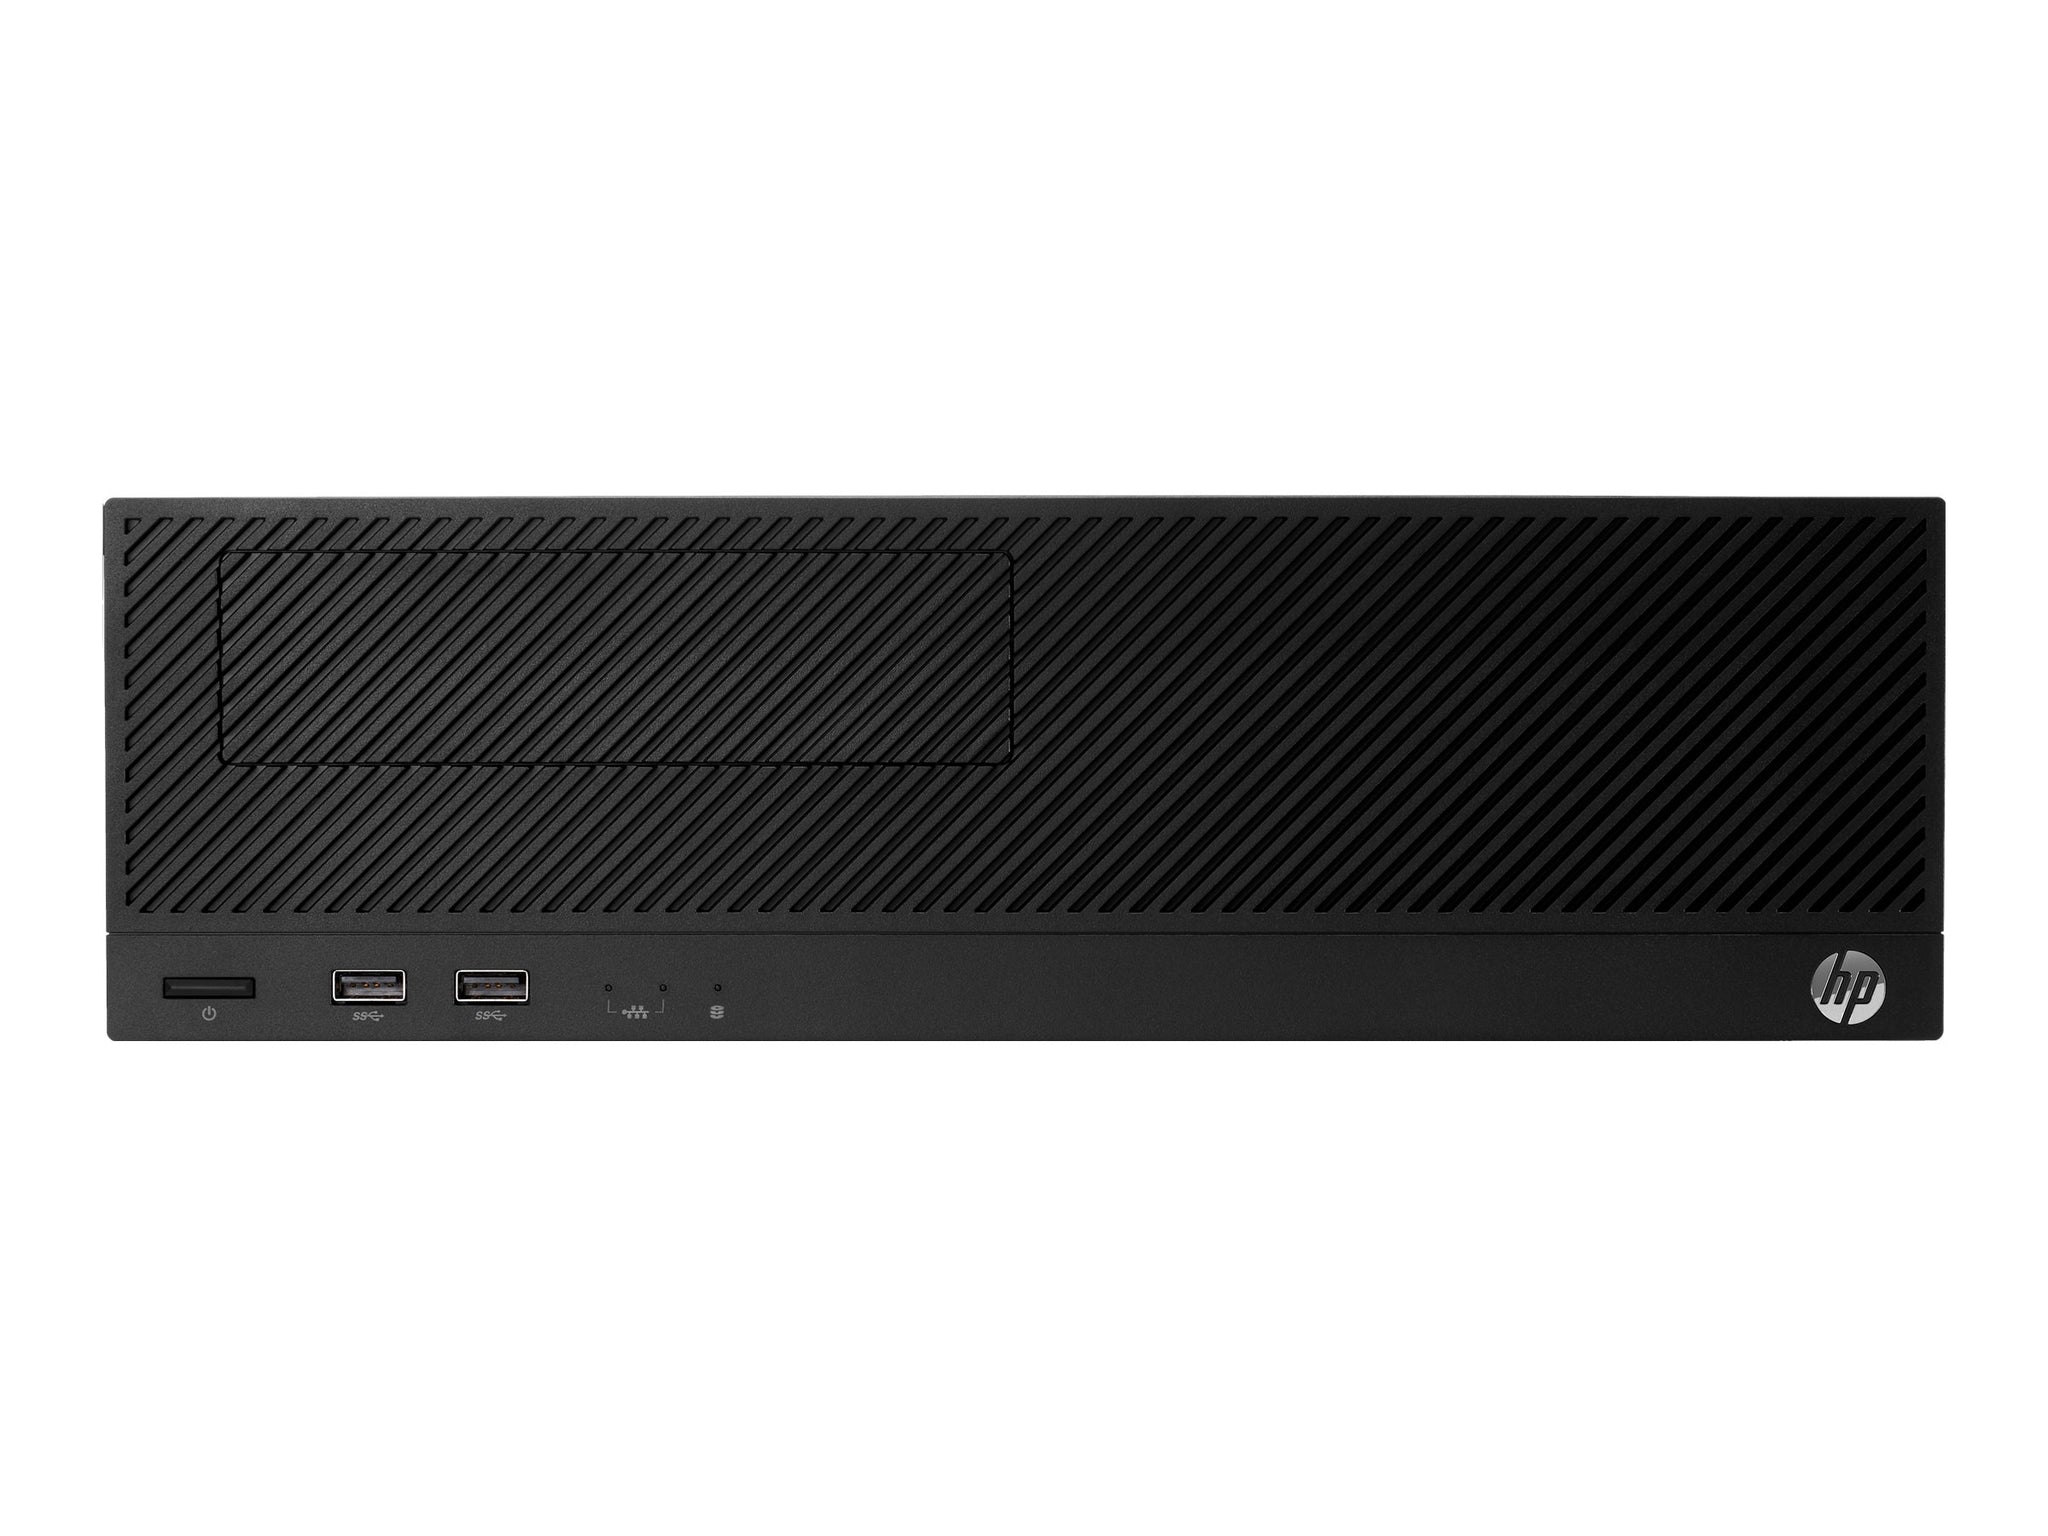 HP ENGAGE FLEX PRO EX-LEASE SFF I5-8500T 2.10GHz 8GB DDR4 128GB SSD UHD GRAPHICS 630 WIN 10 PRO